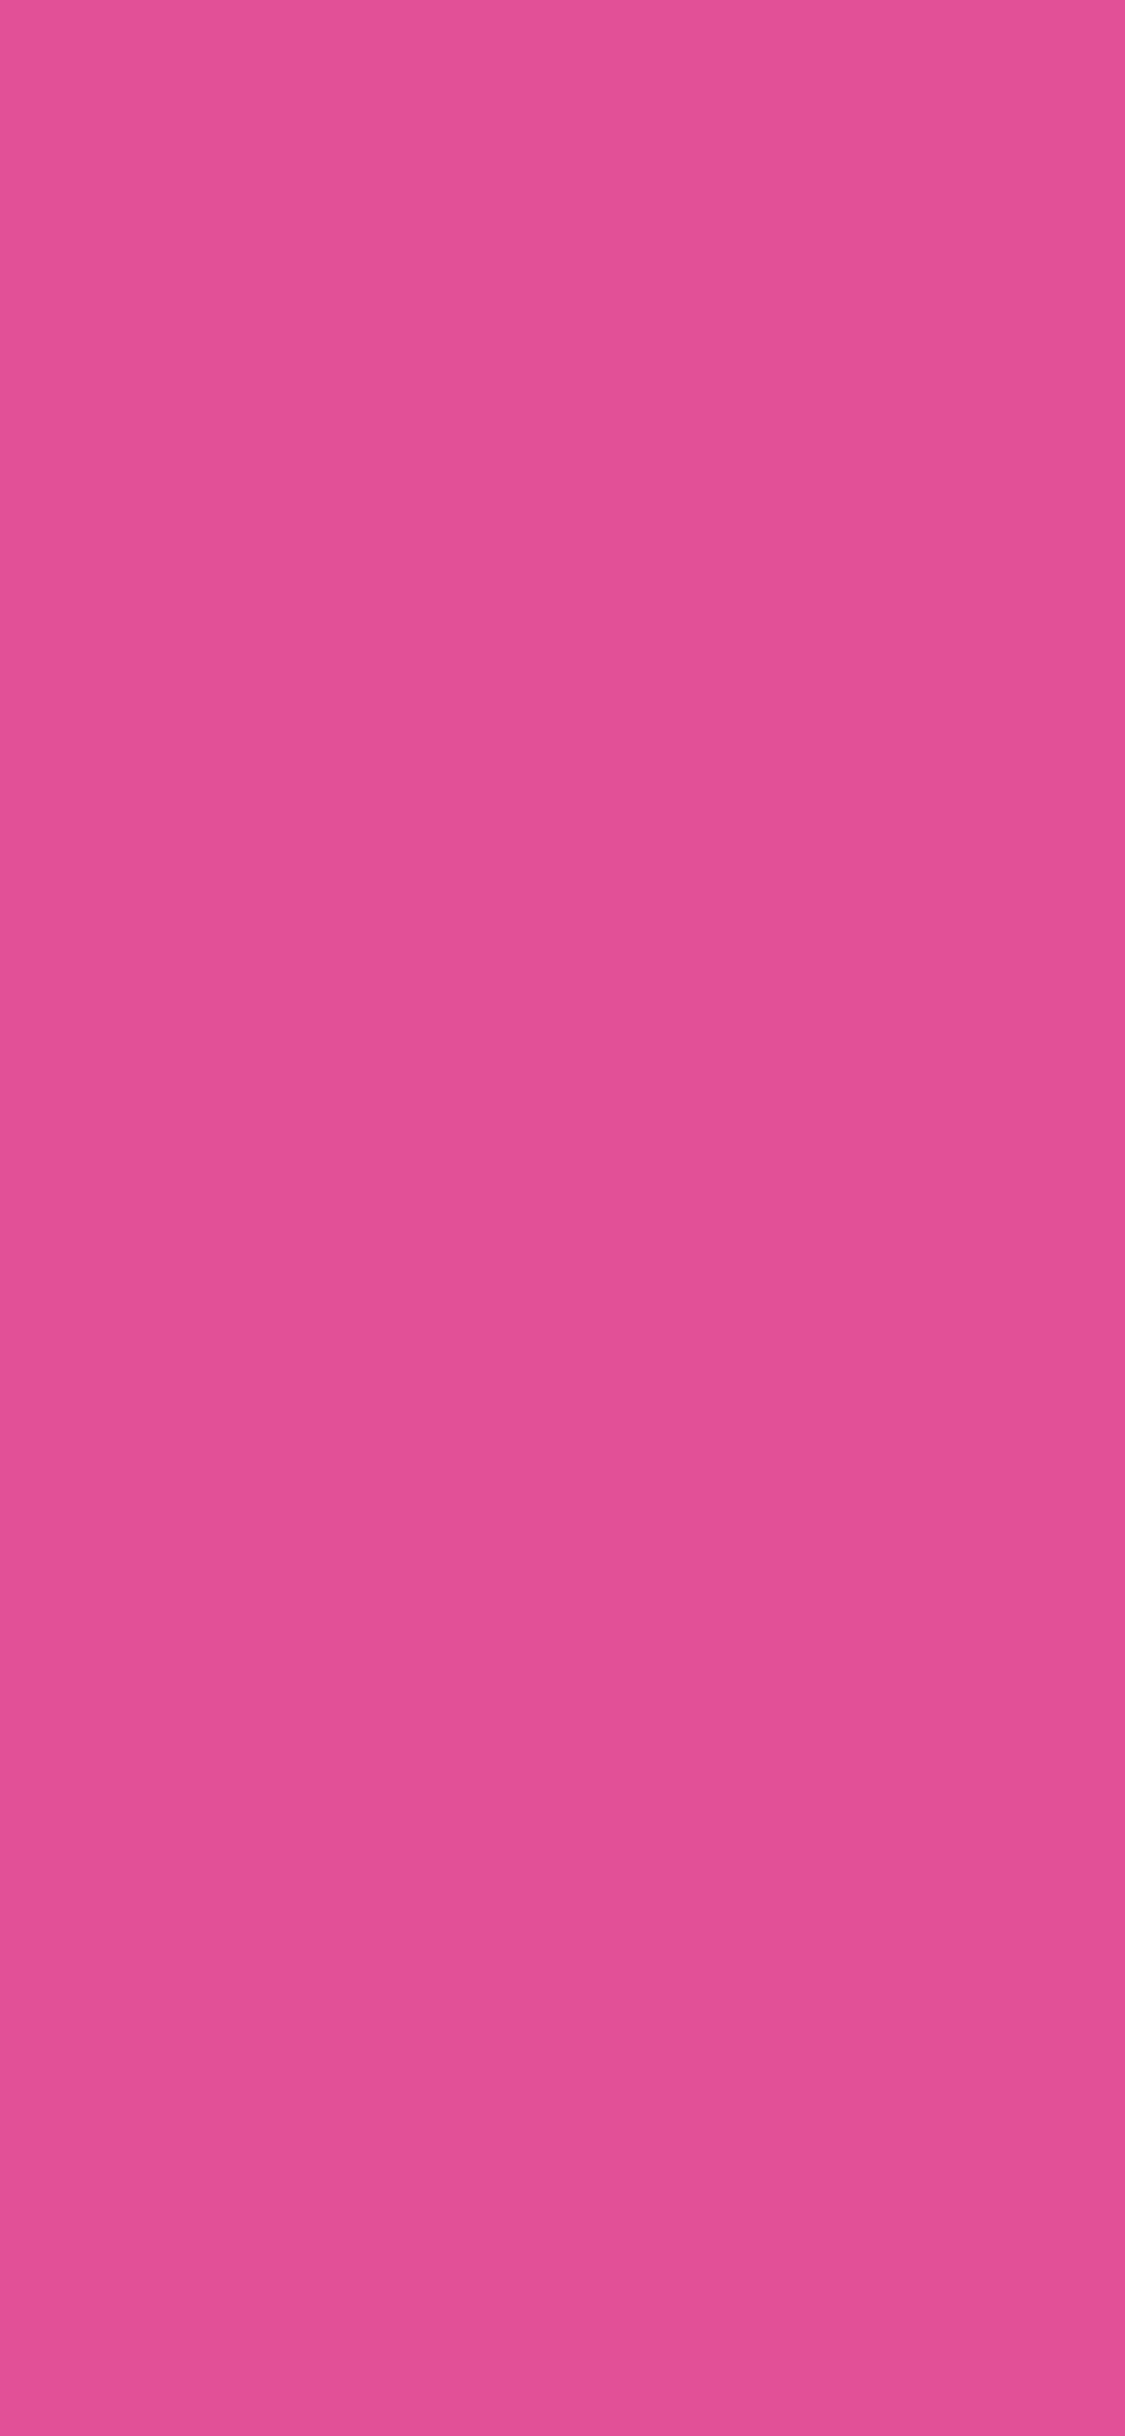 1125x2436 Raspberry Pink Solid Color Background